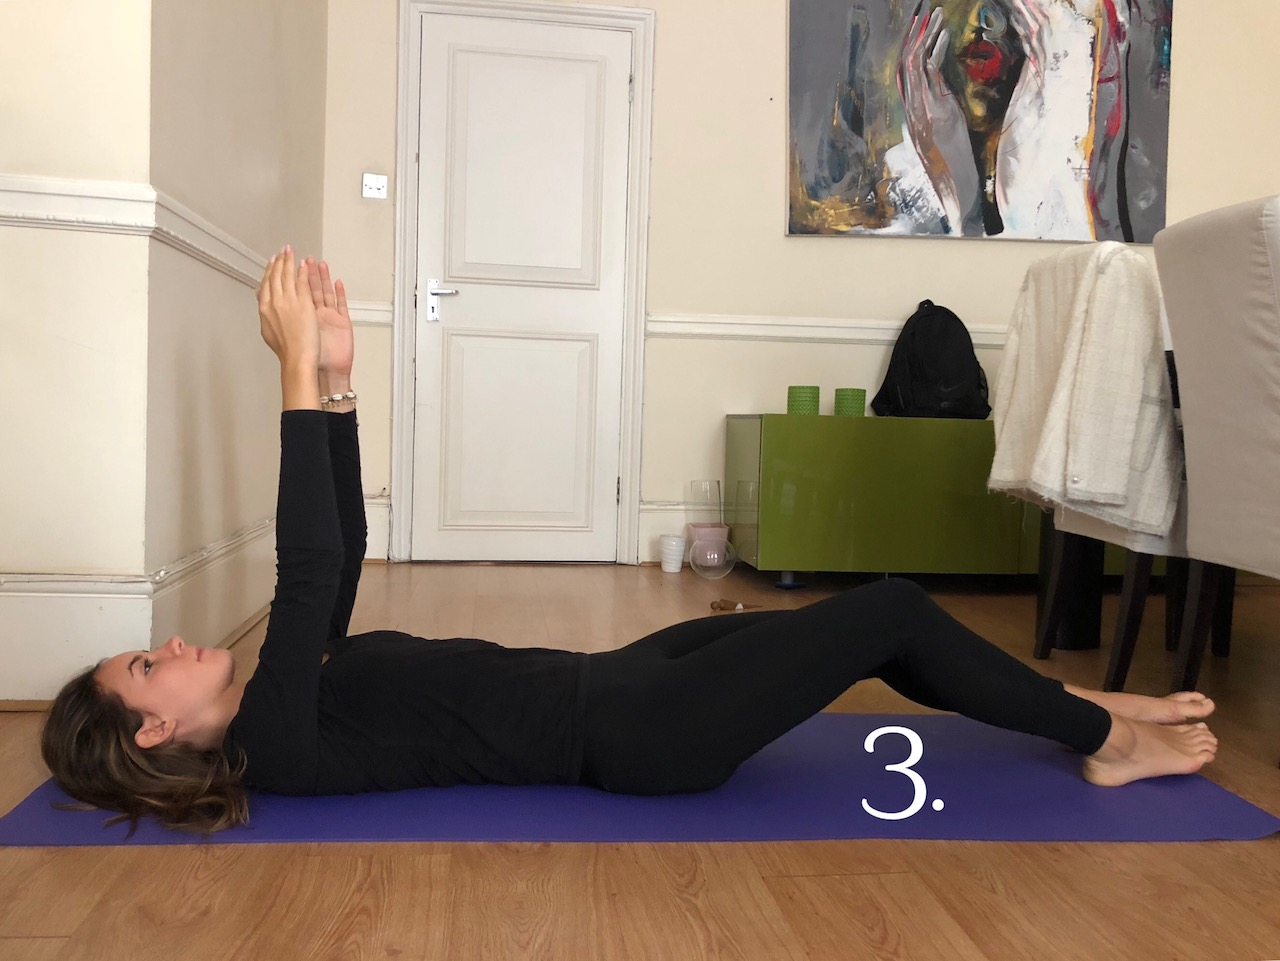 arms up single leg knee up abs